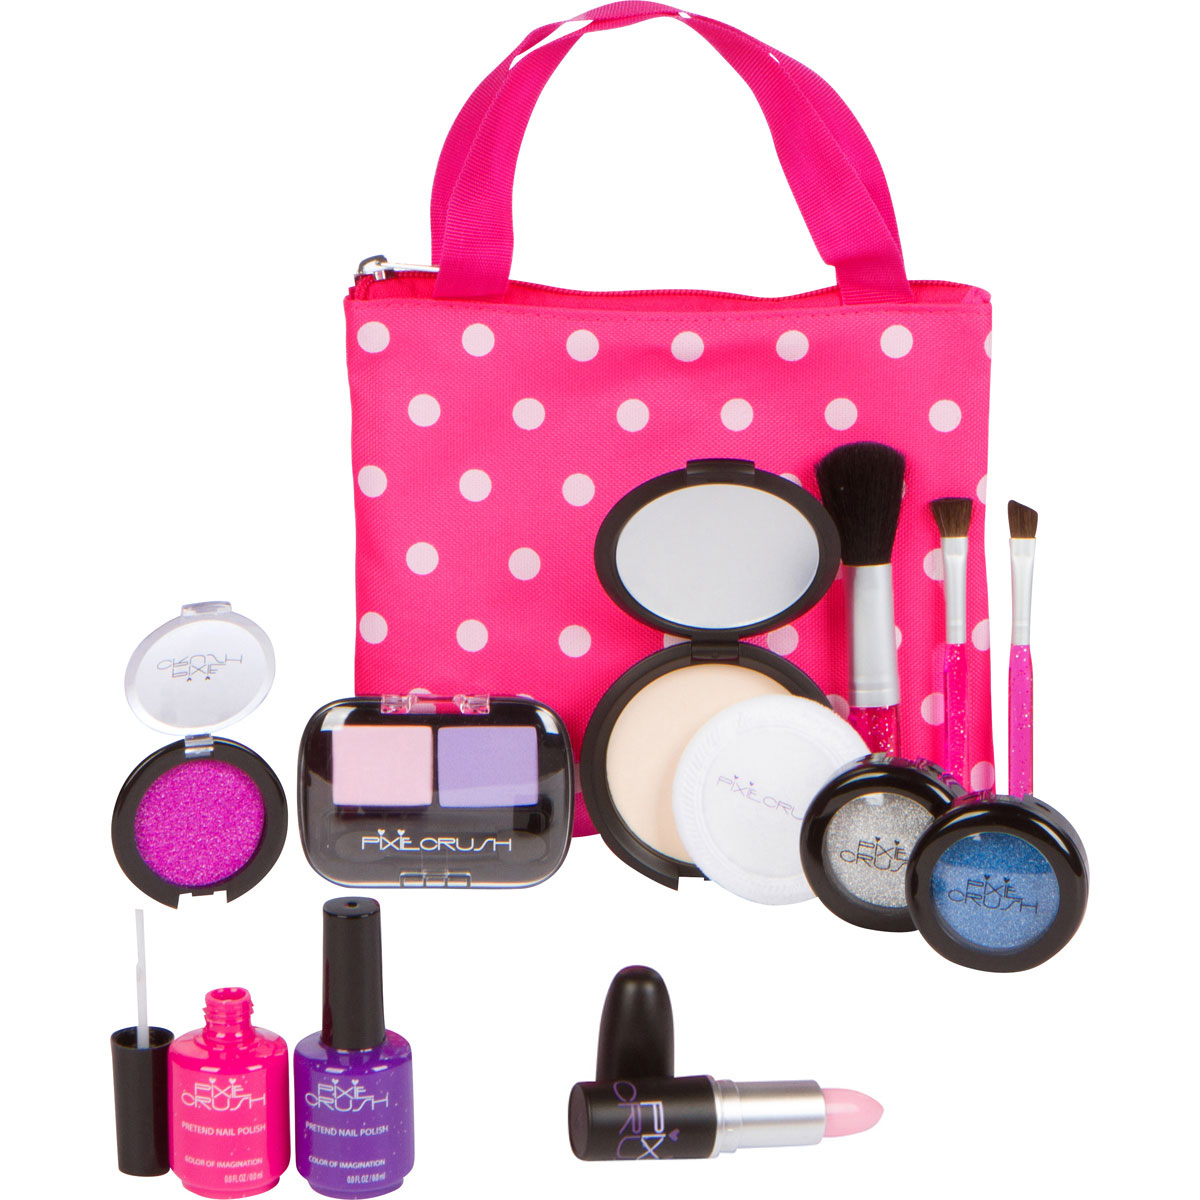 PixieCrush Pretend Play Makeup Kit. Designer Girls Polka Dot Bag - Beauty Basics Set